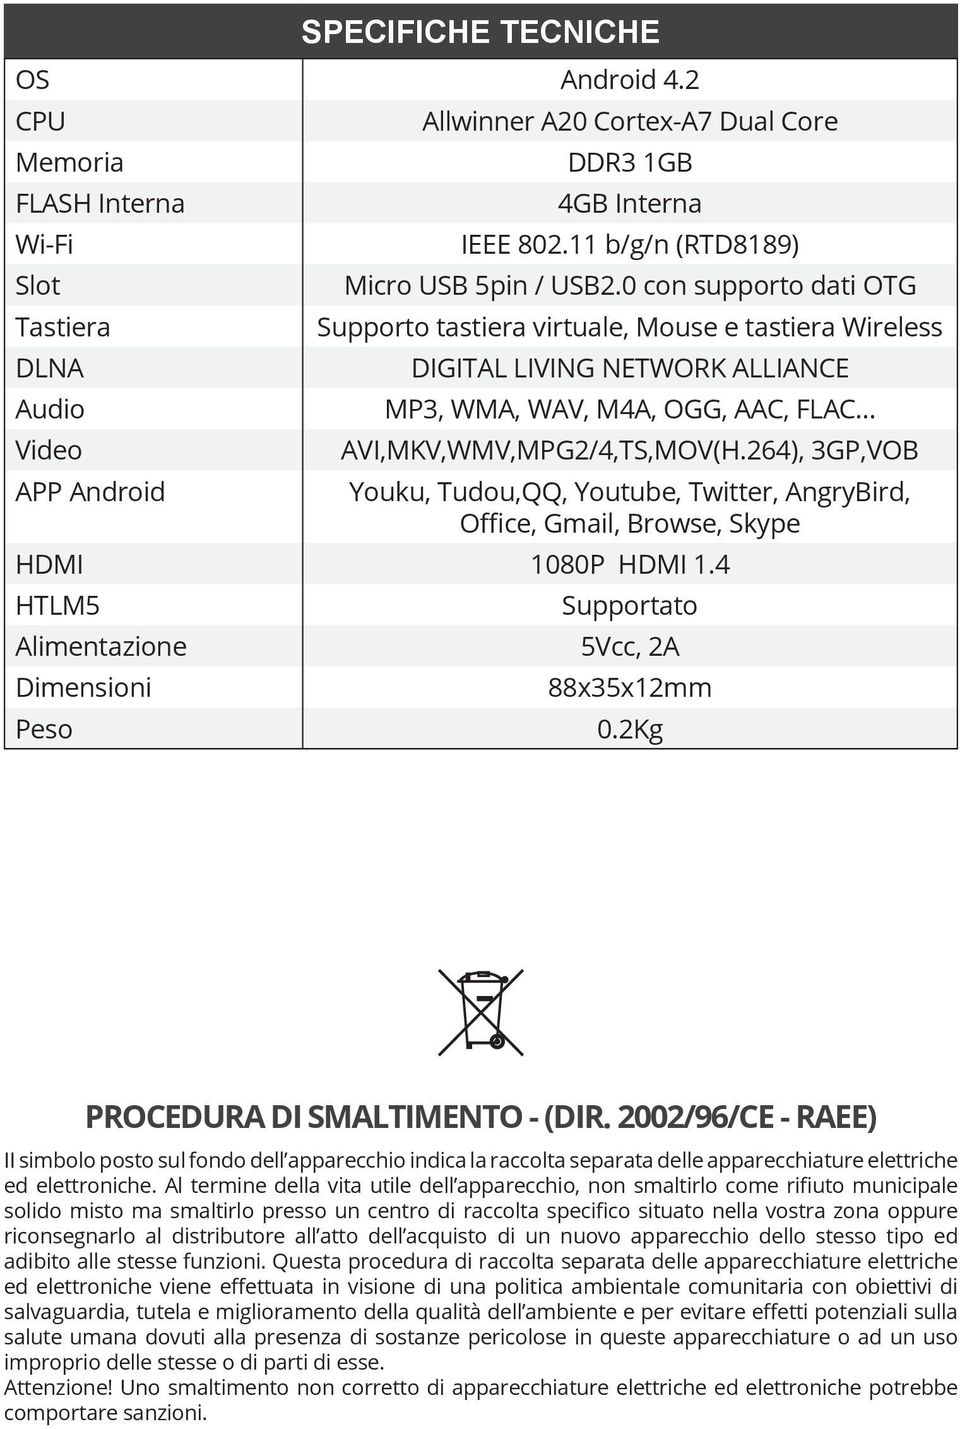 0 con supporto dati OTG Supporto tastiera virtuale, Mouse e tastiera Wireless DIGITAL LIVING NETWORK ALLIANCE MP3, WMA, WAV, M4A, OGG, AAC, FLAC AVI,MKV,WMV,MPG2/4,TS,MOV(H.